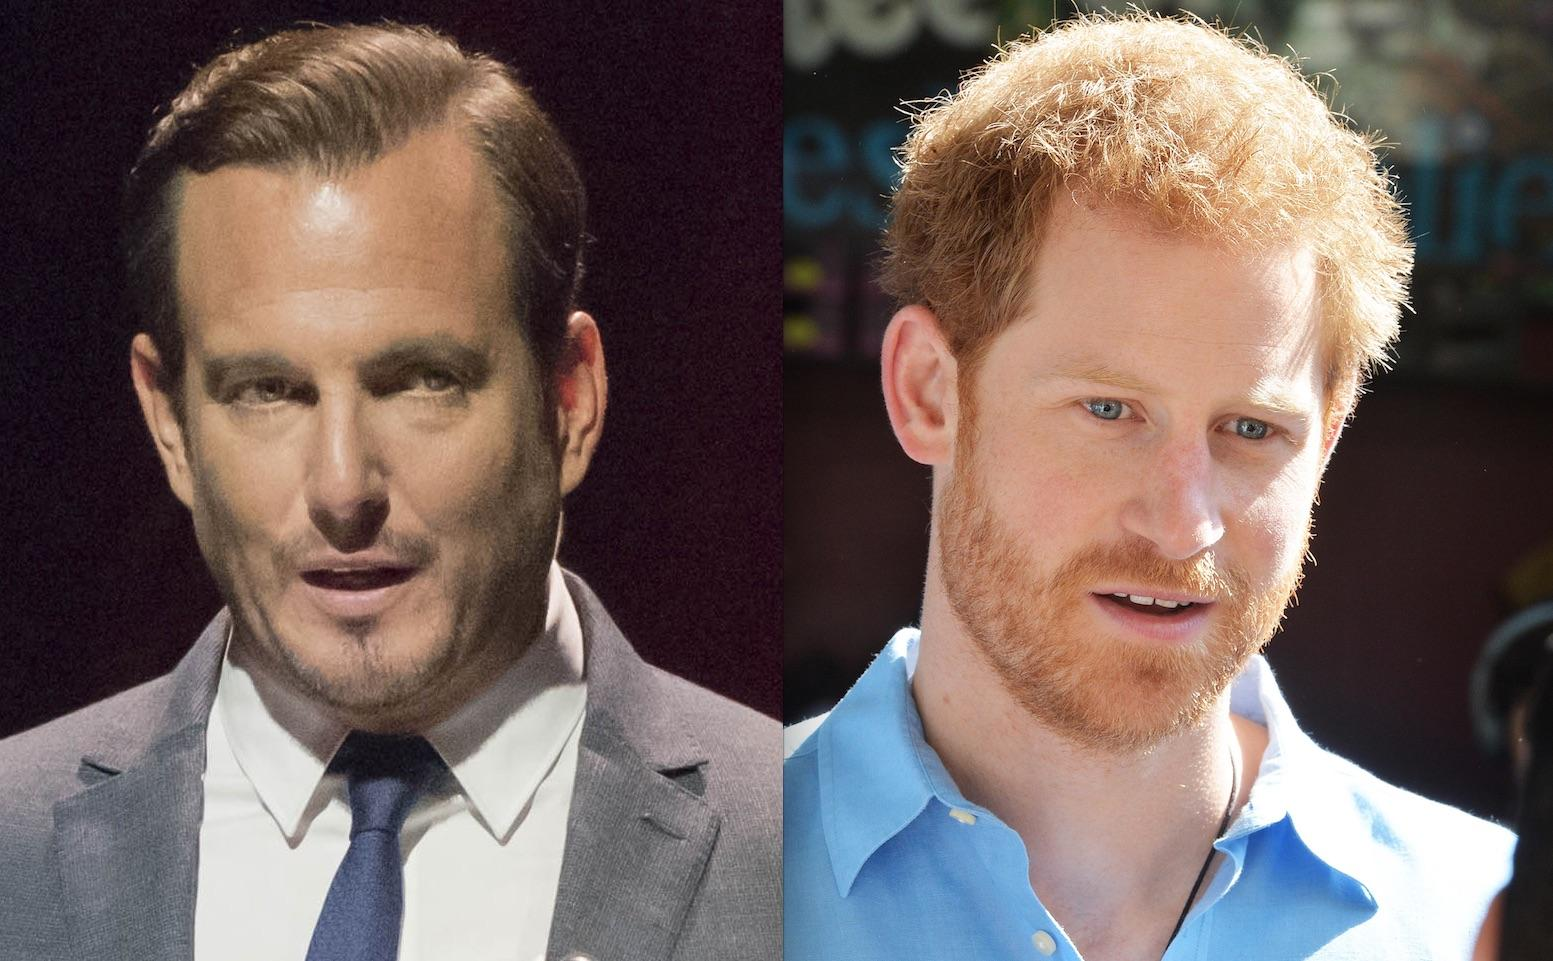 Will Arnett Reveals He Texts With Prince Harry: 'He's The Real Deal'